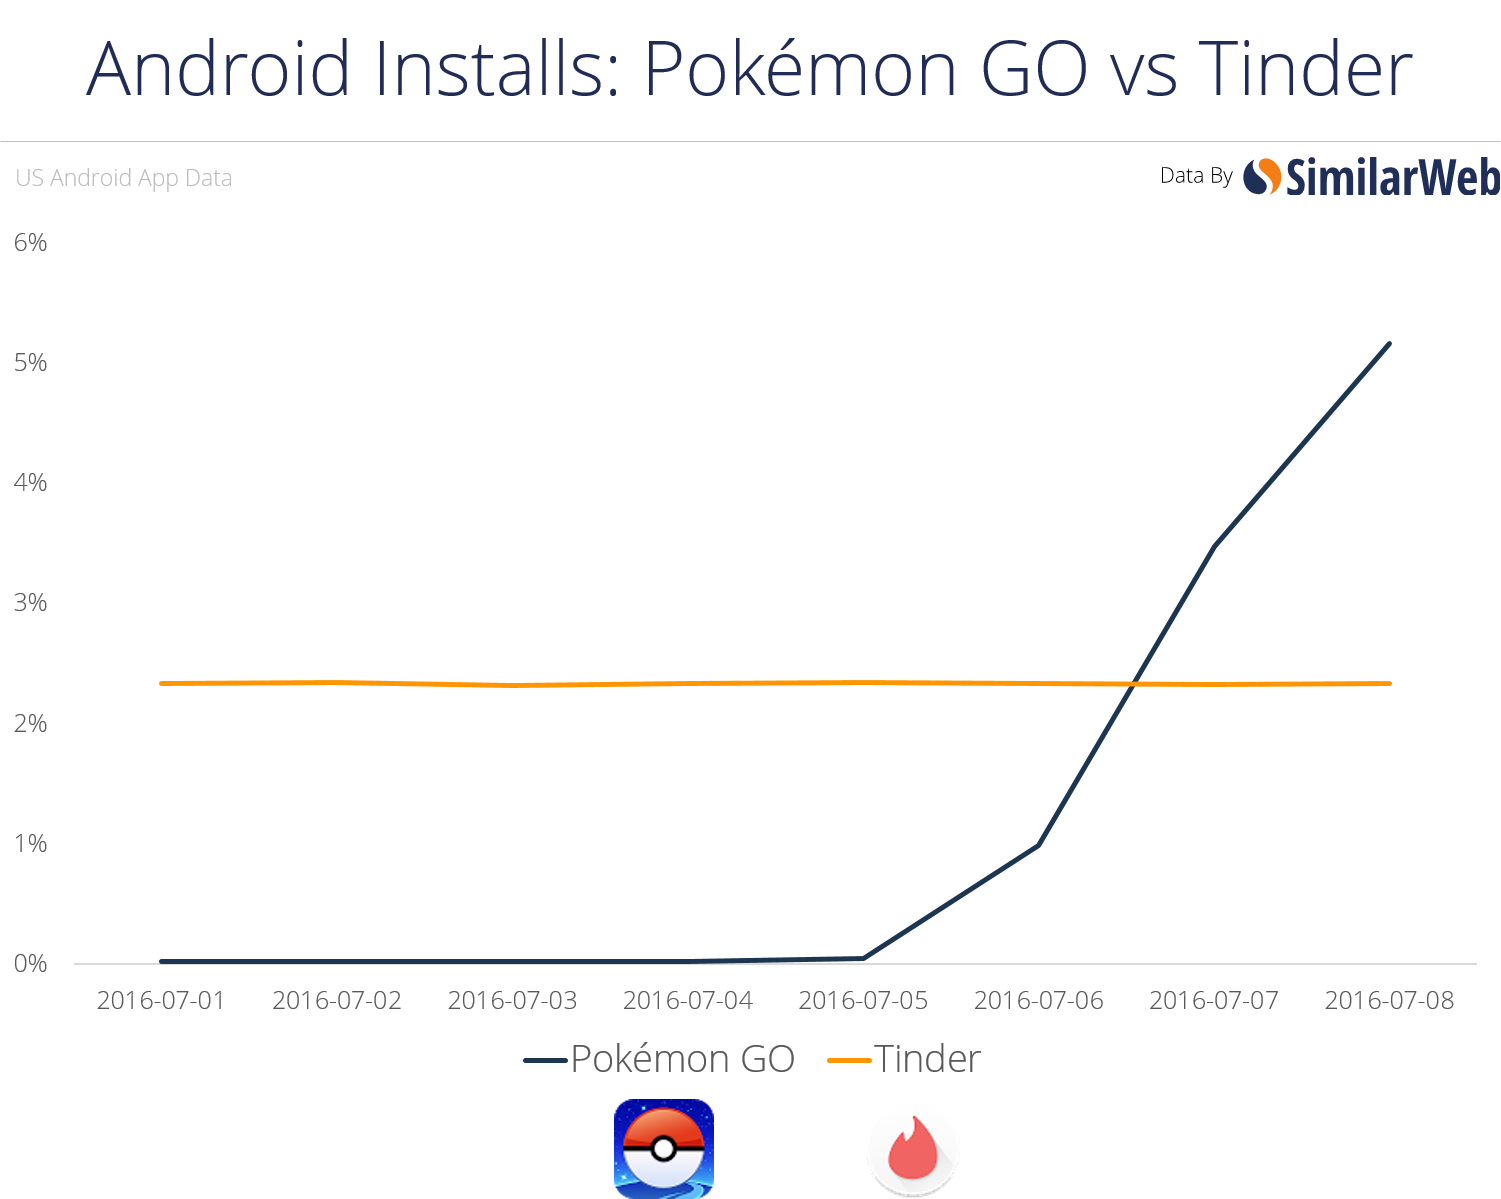 Pokémon Go vs. Tinder